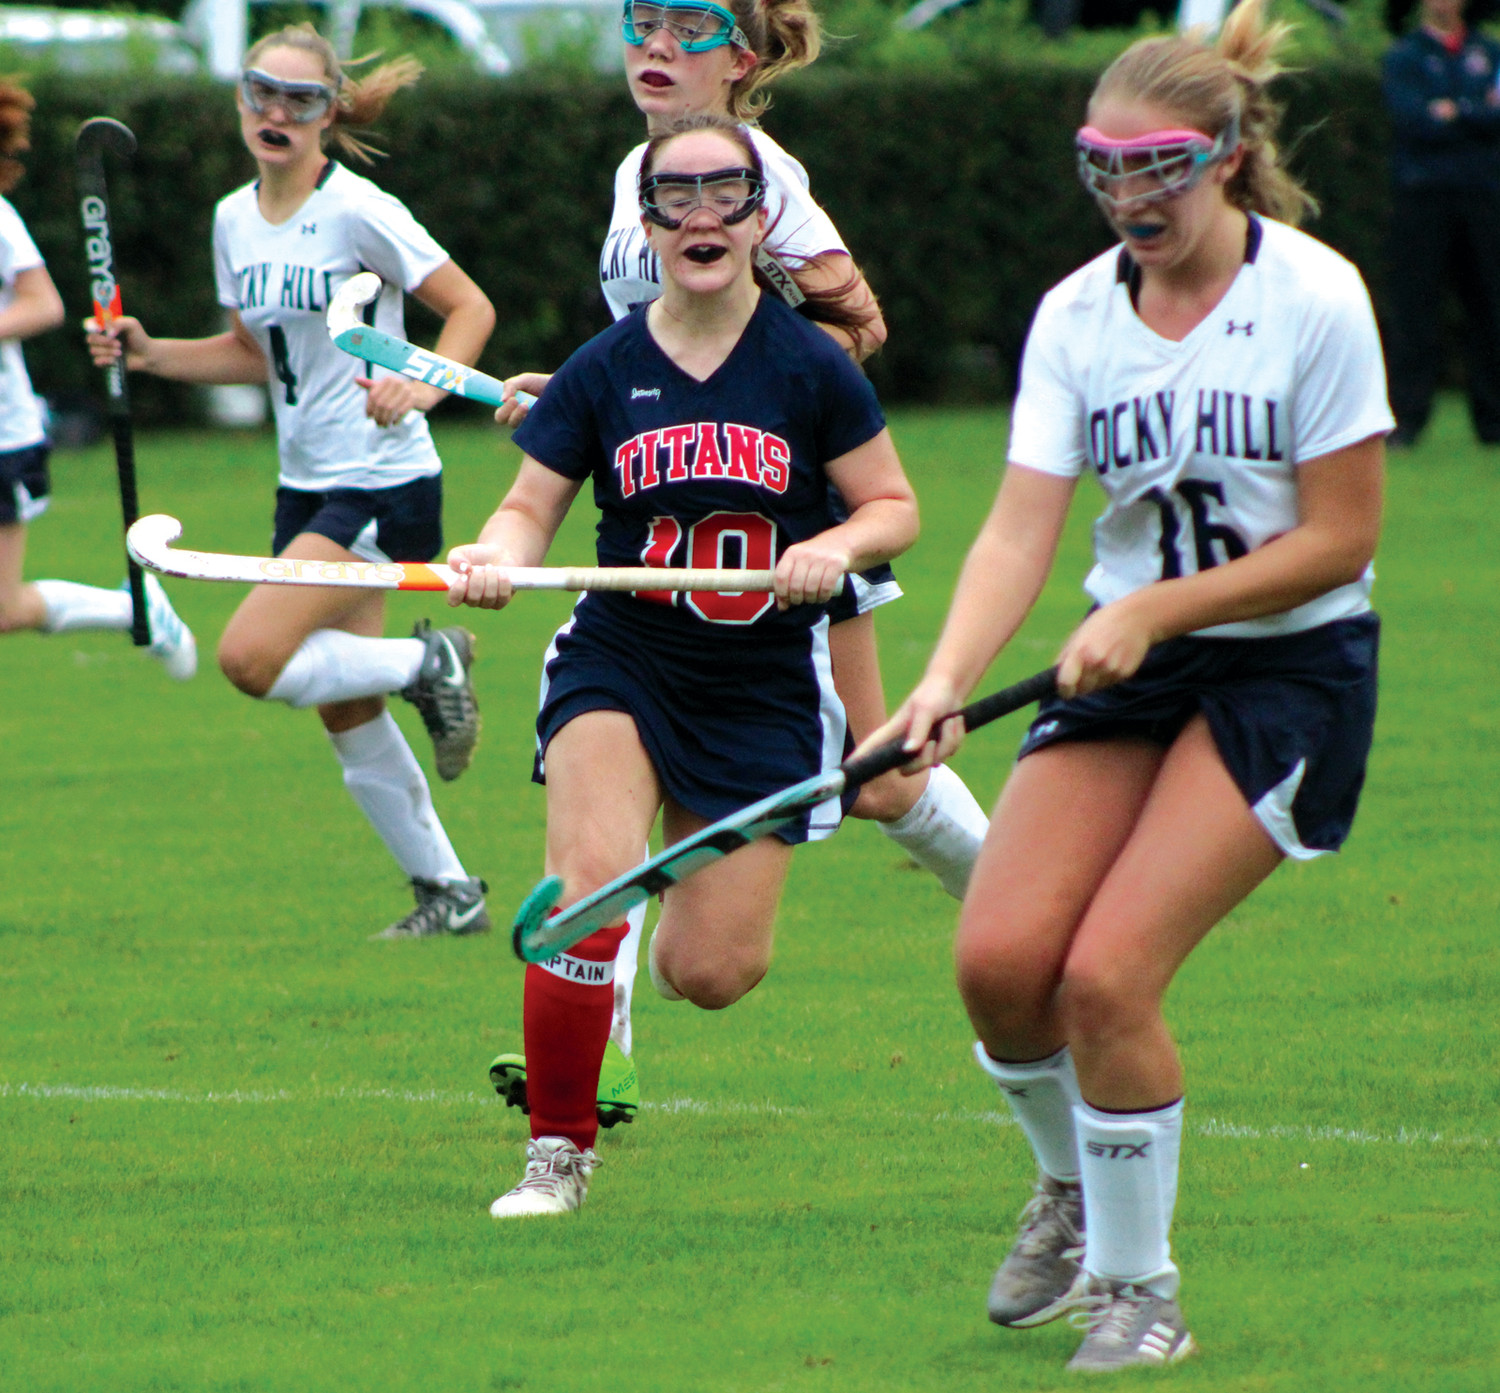 GETTING AFTER IT: Toll Gate's Nicole Procaccini tracks down the ball.